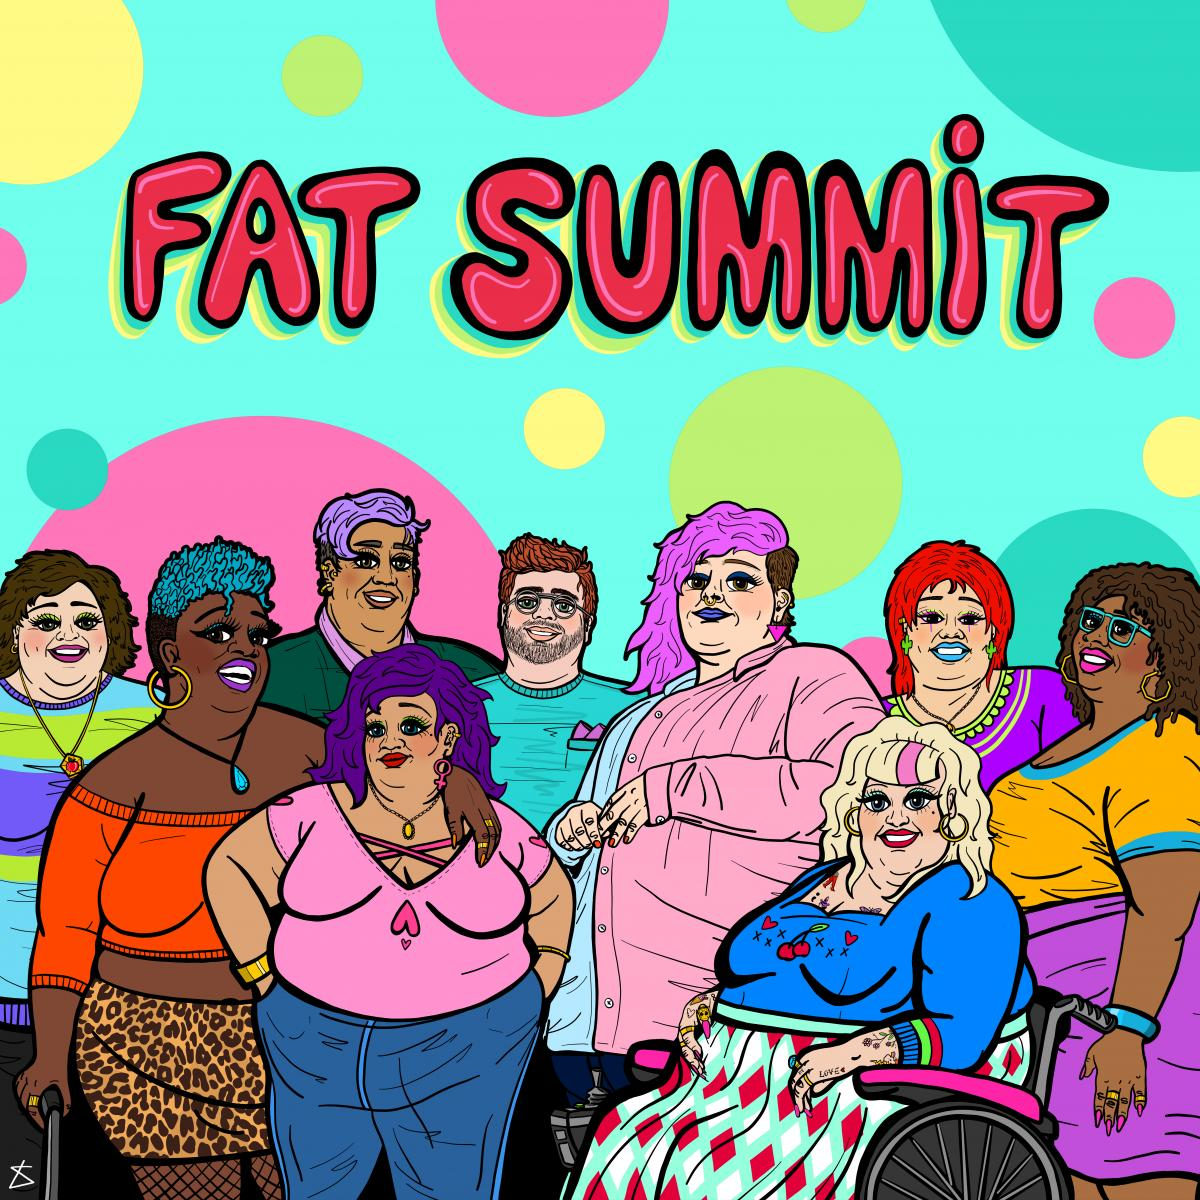 Fat Summit - Fatty Fat Fat at Departure Lounge